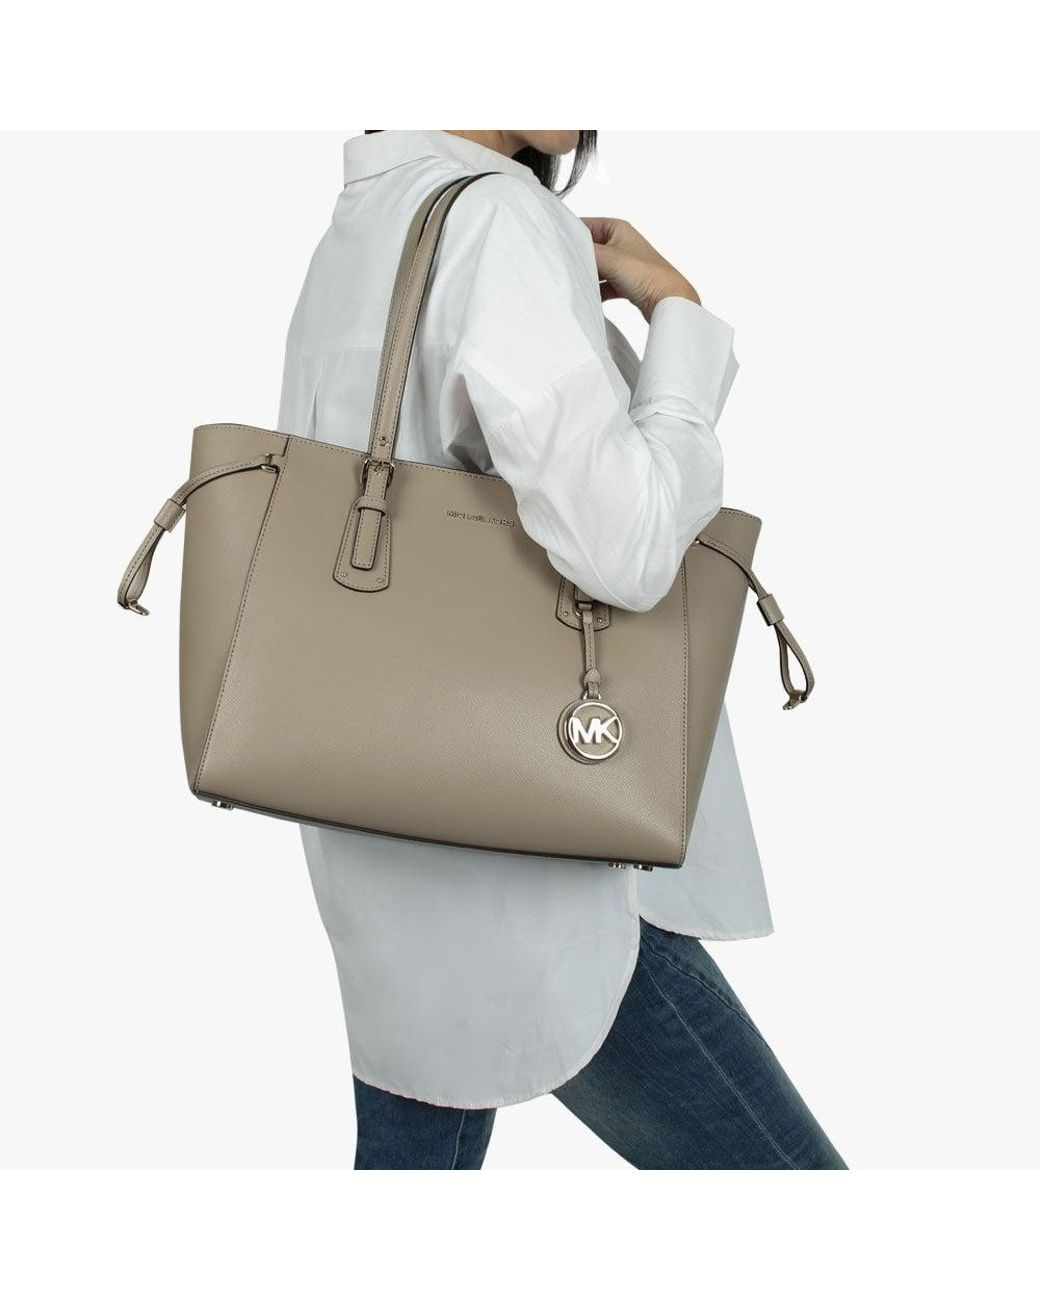 370717d34 Michael Kors Voyager Truffle Saffiano Leather Tote Bag - Save 9% - Lyst